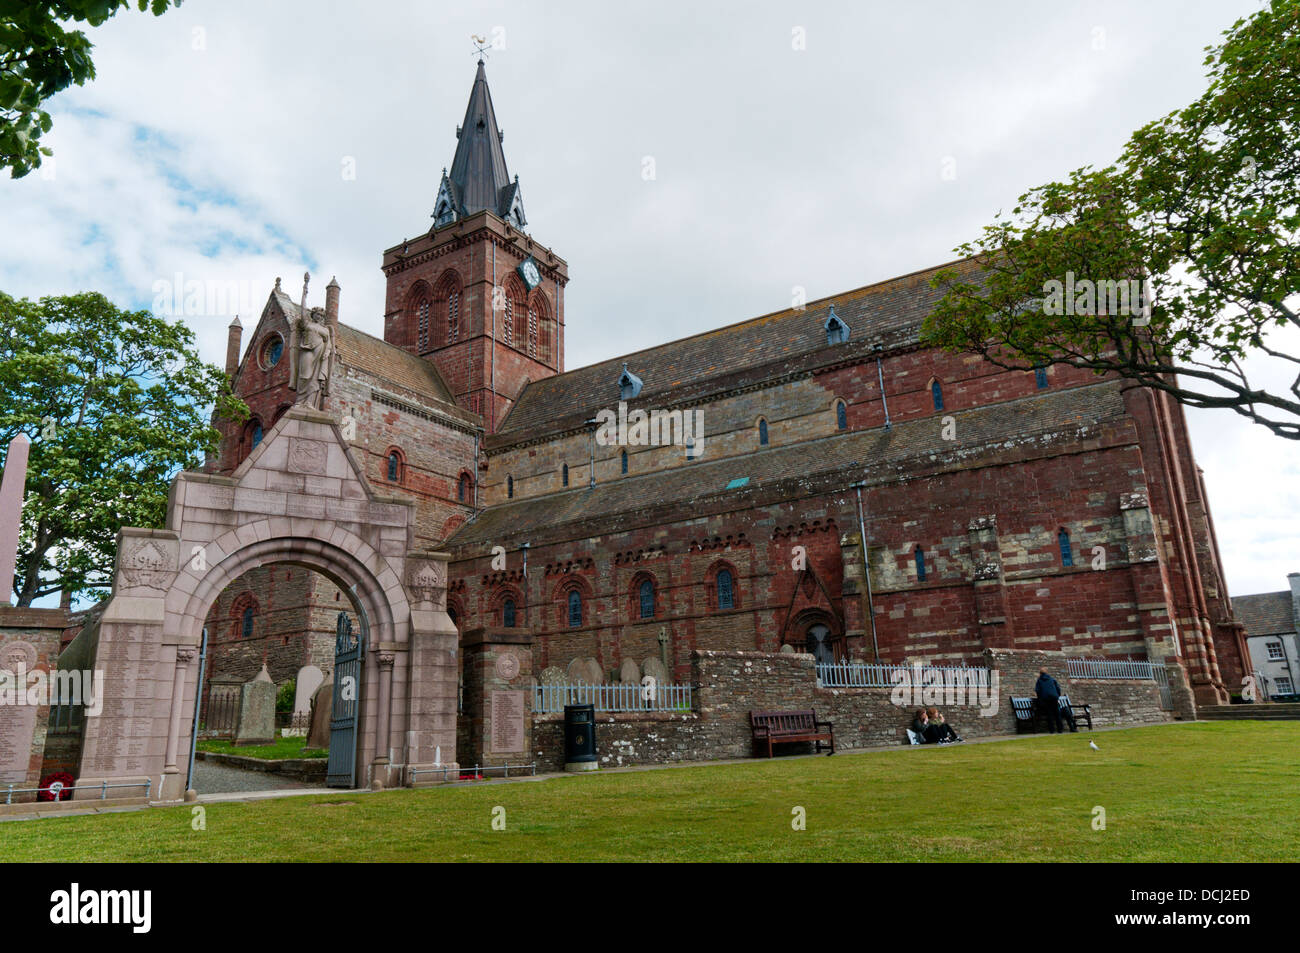 St Magnus Cathedral, Kirkwall, Orkney - Stock Image